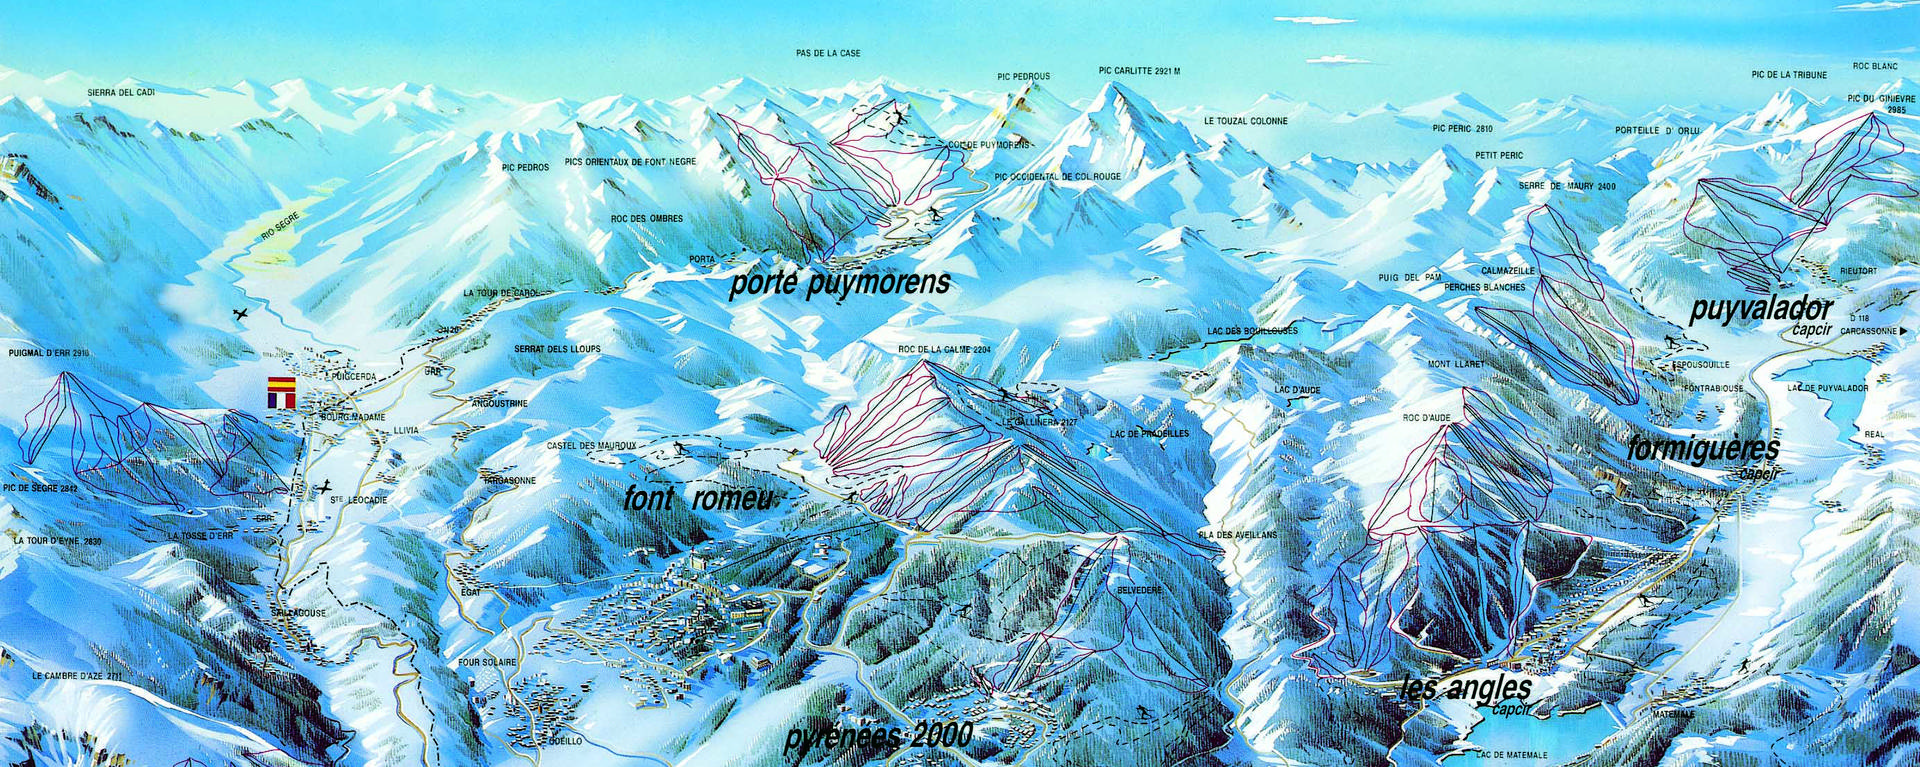 Carte des neiges catalanes